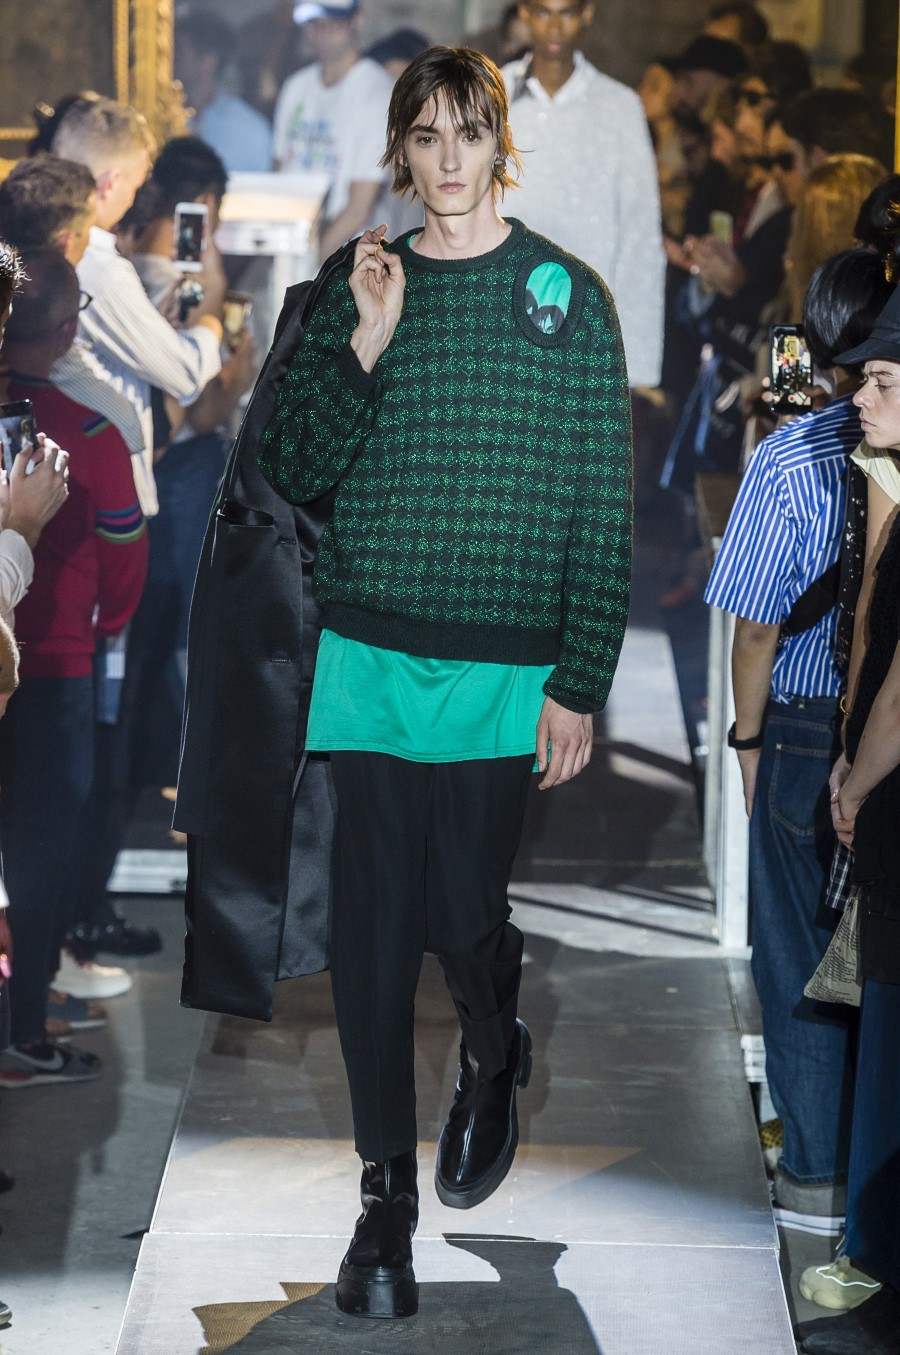 Raf Simons Spring/Summer 2019 - Paris Fashion Week